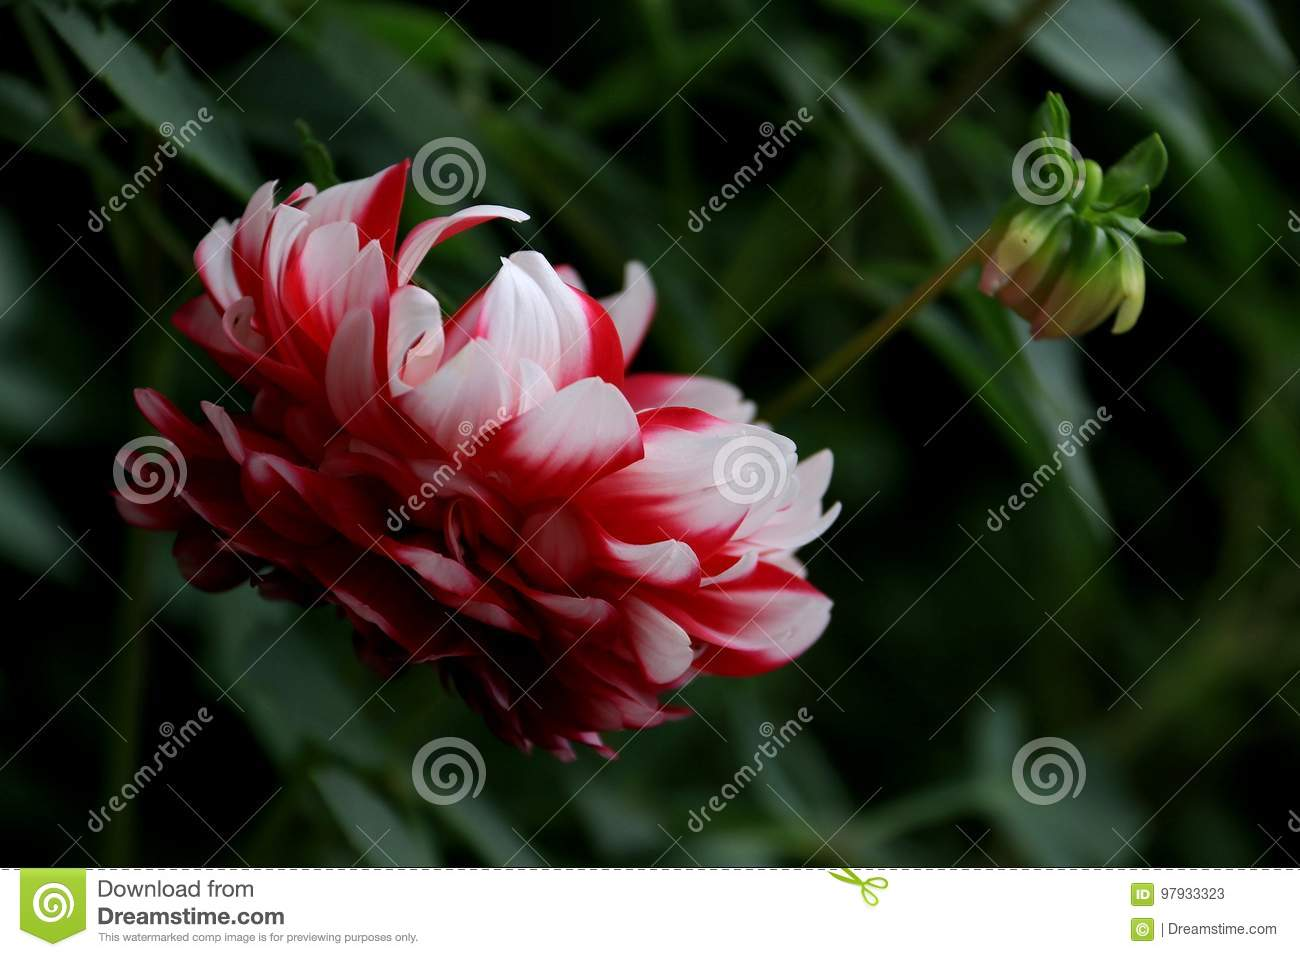 Flower Stock Image Image Of Berry Familynn Delicious 97933323